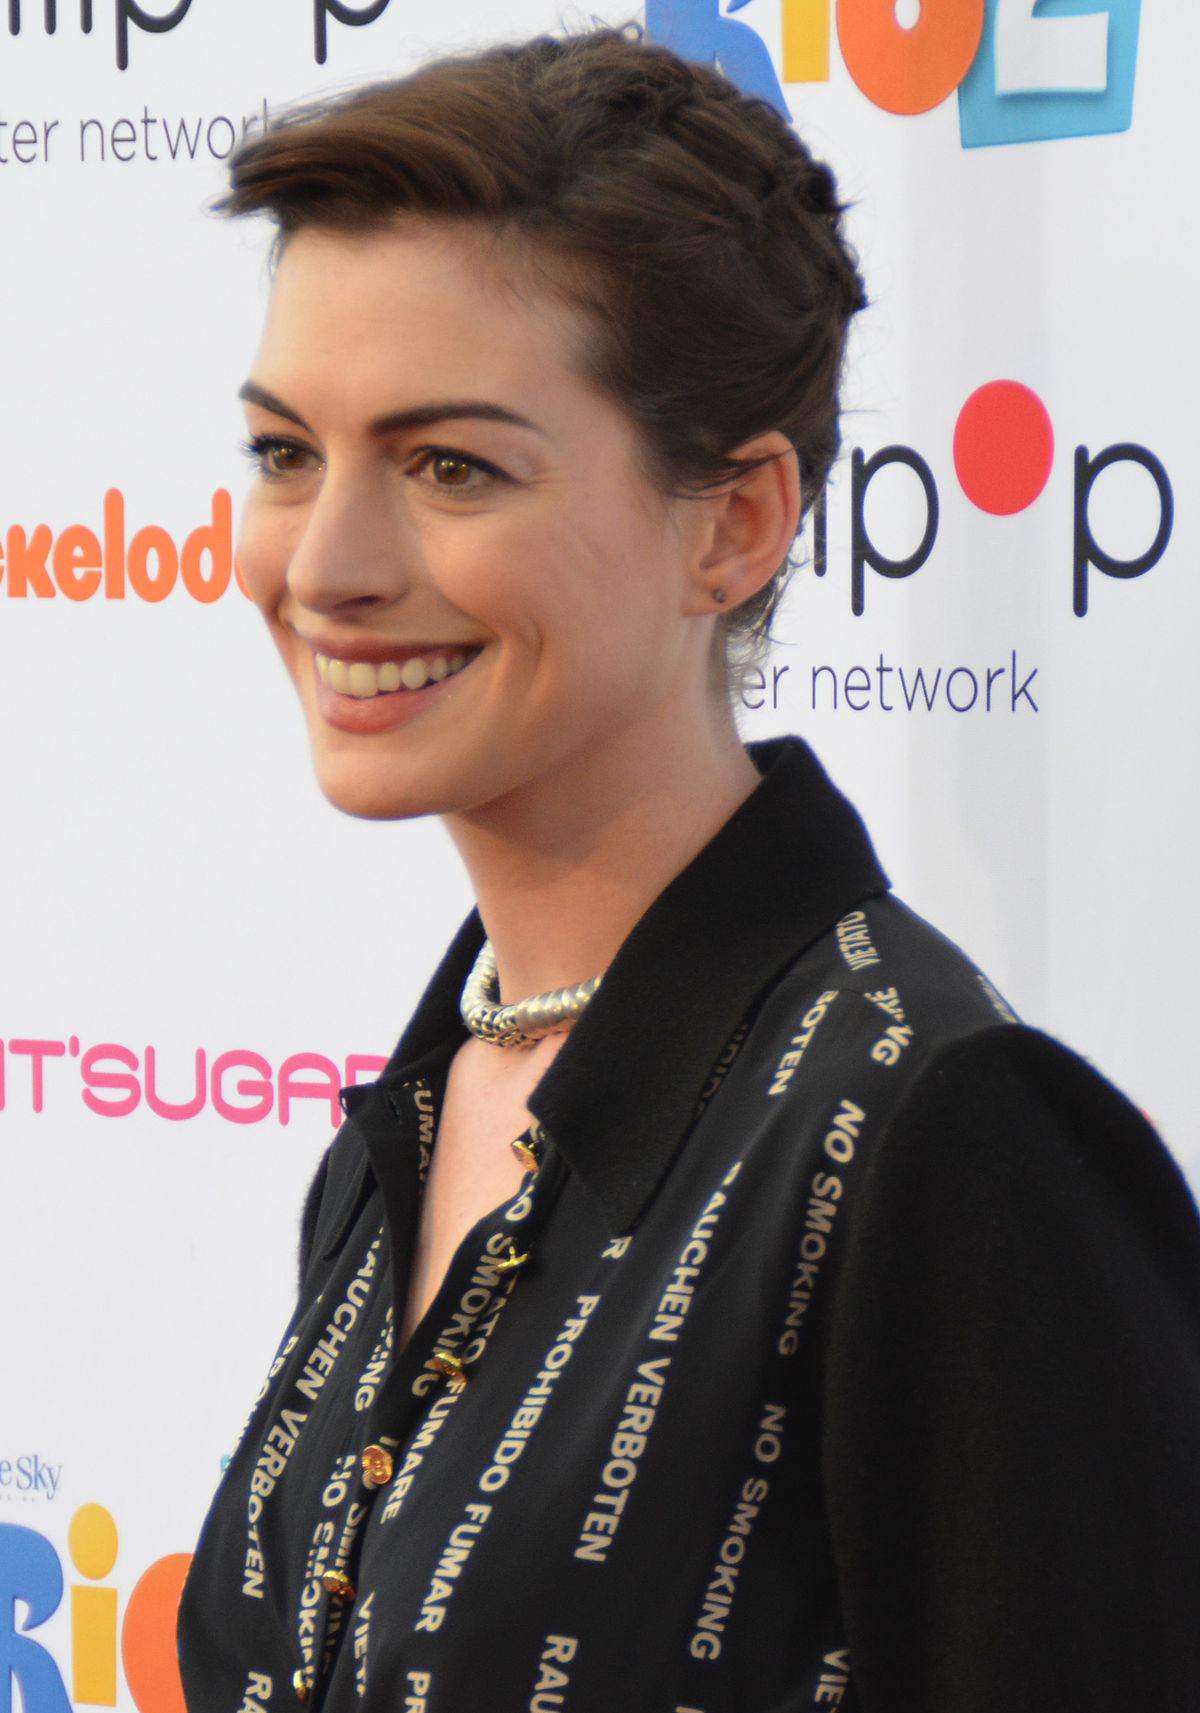 Im im images of anne hathaway - Im Im Images Of Anne Hathaway 38